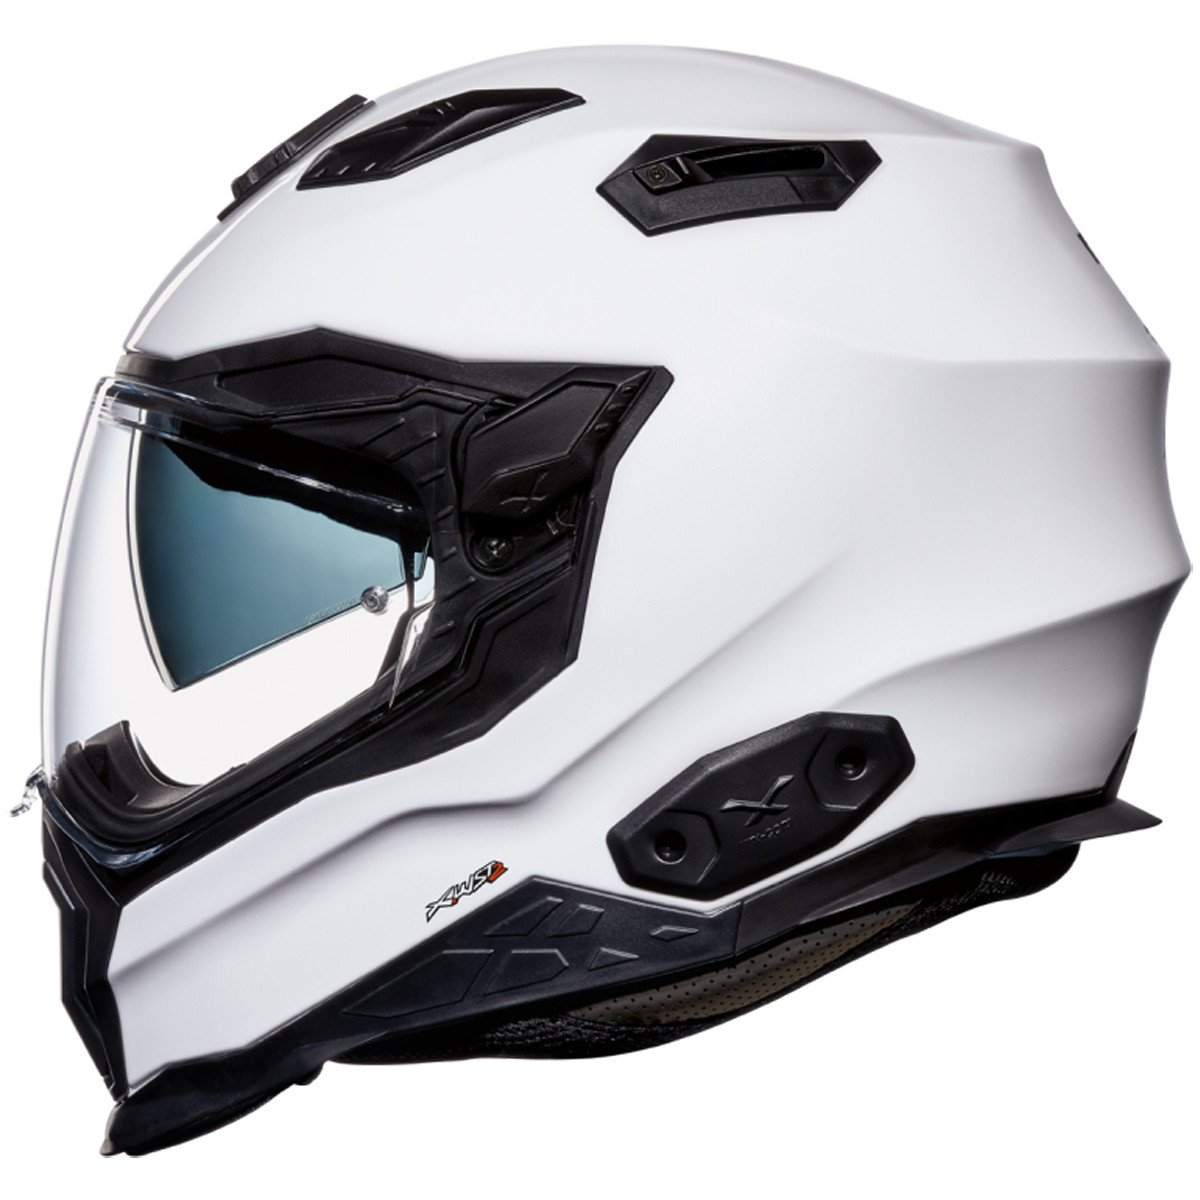 The Nexx X WST 2 Helmet Plain